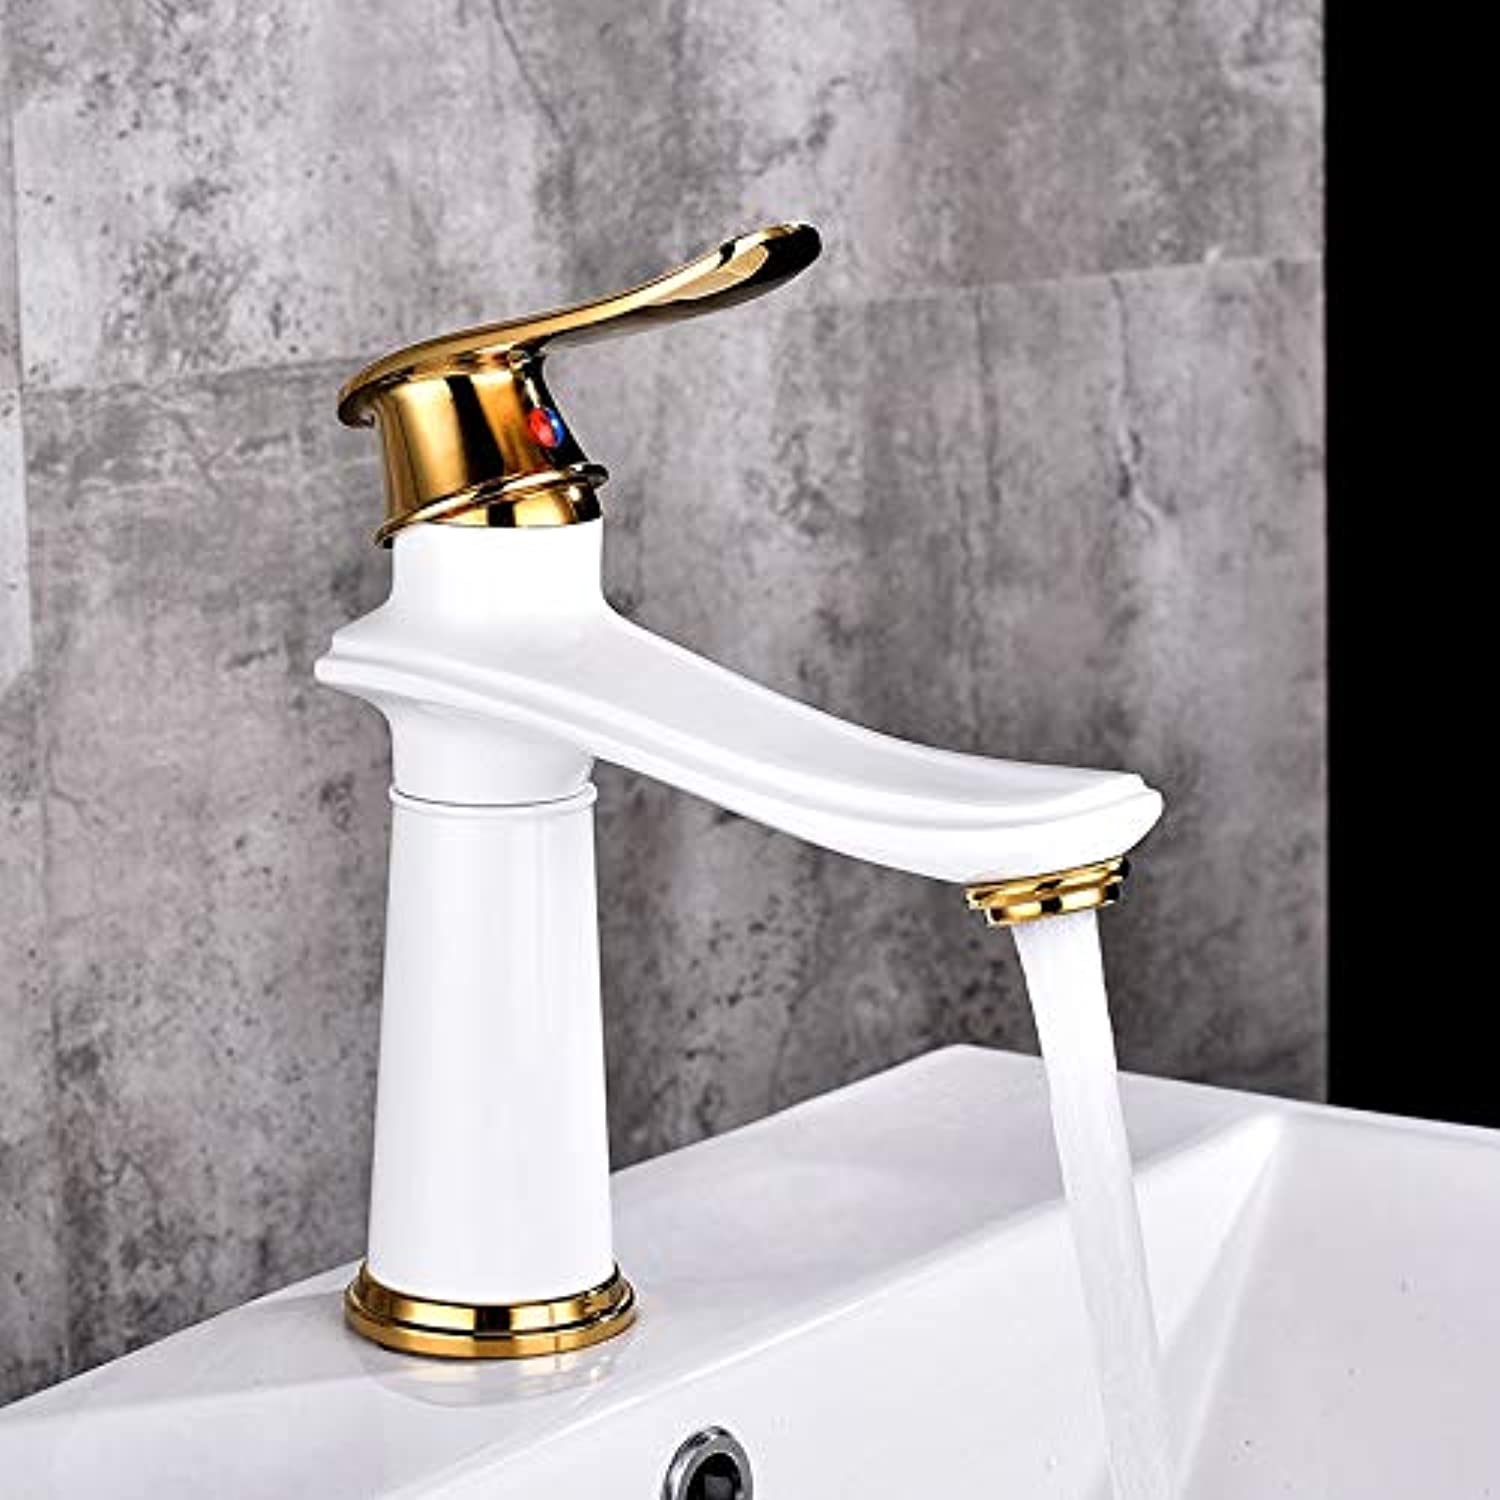 Basin Faucet Faucet Faucet Bathroom Faucet Brass Made of Platinum Hot Cold Water Sink Faucet